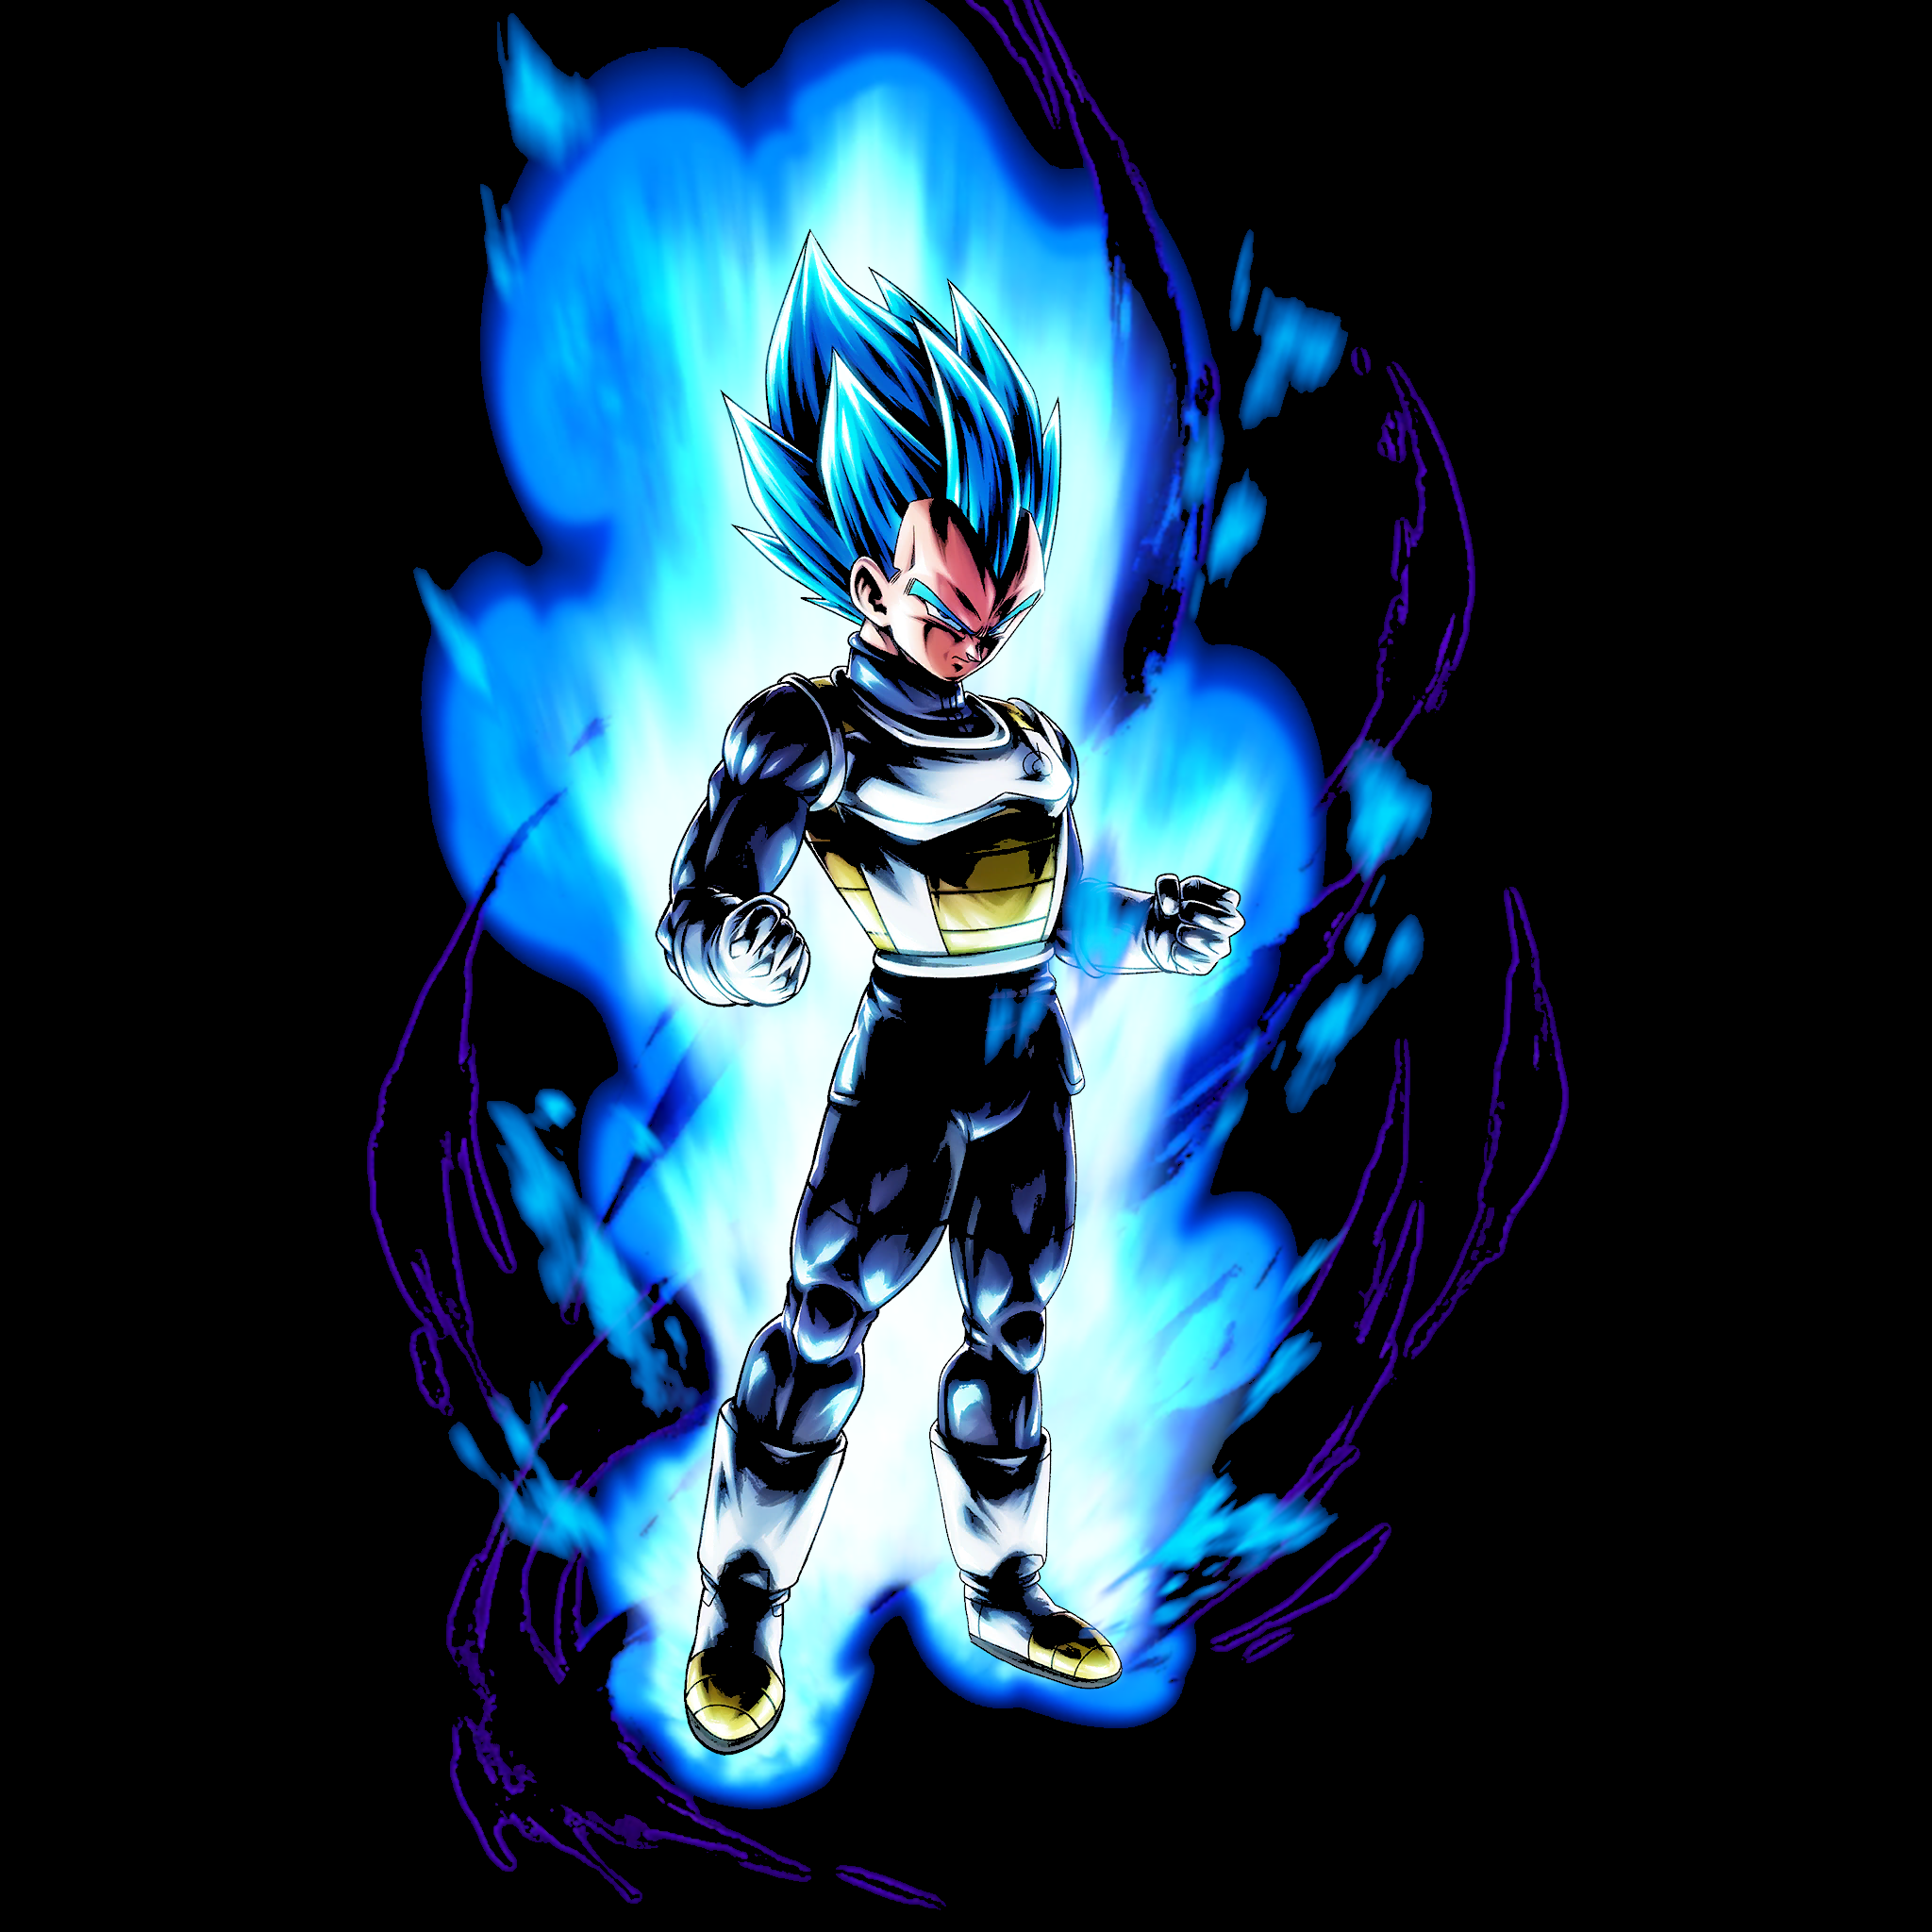 Super Amoled Wallpaper Anime Mywallpapers Site In 2020 Hd Anime Wallpapers Iphone Wallpaper Images Dragon Ball Wallpapers